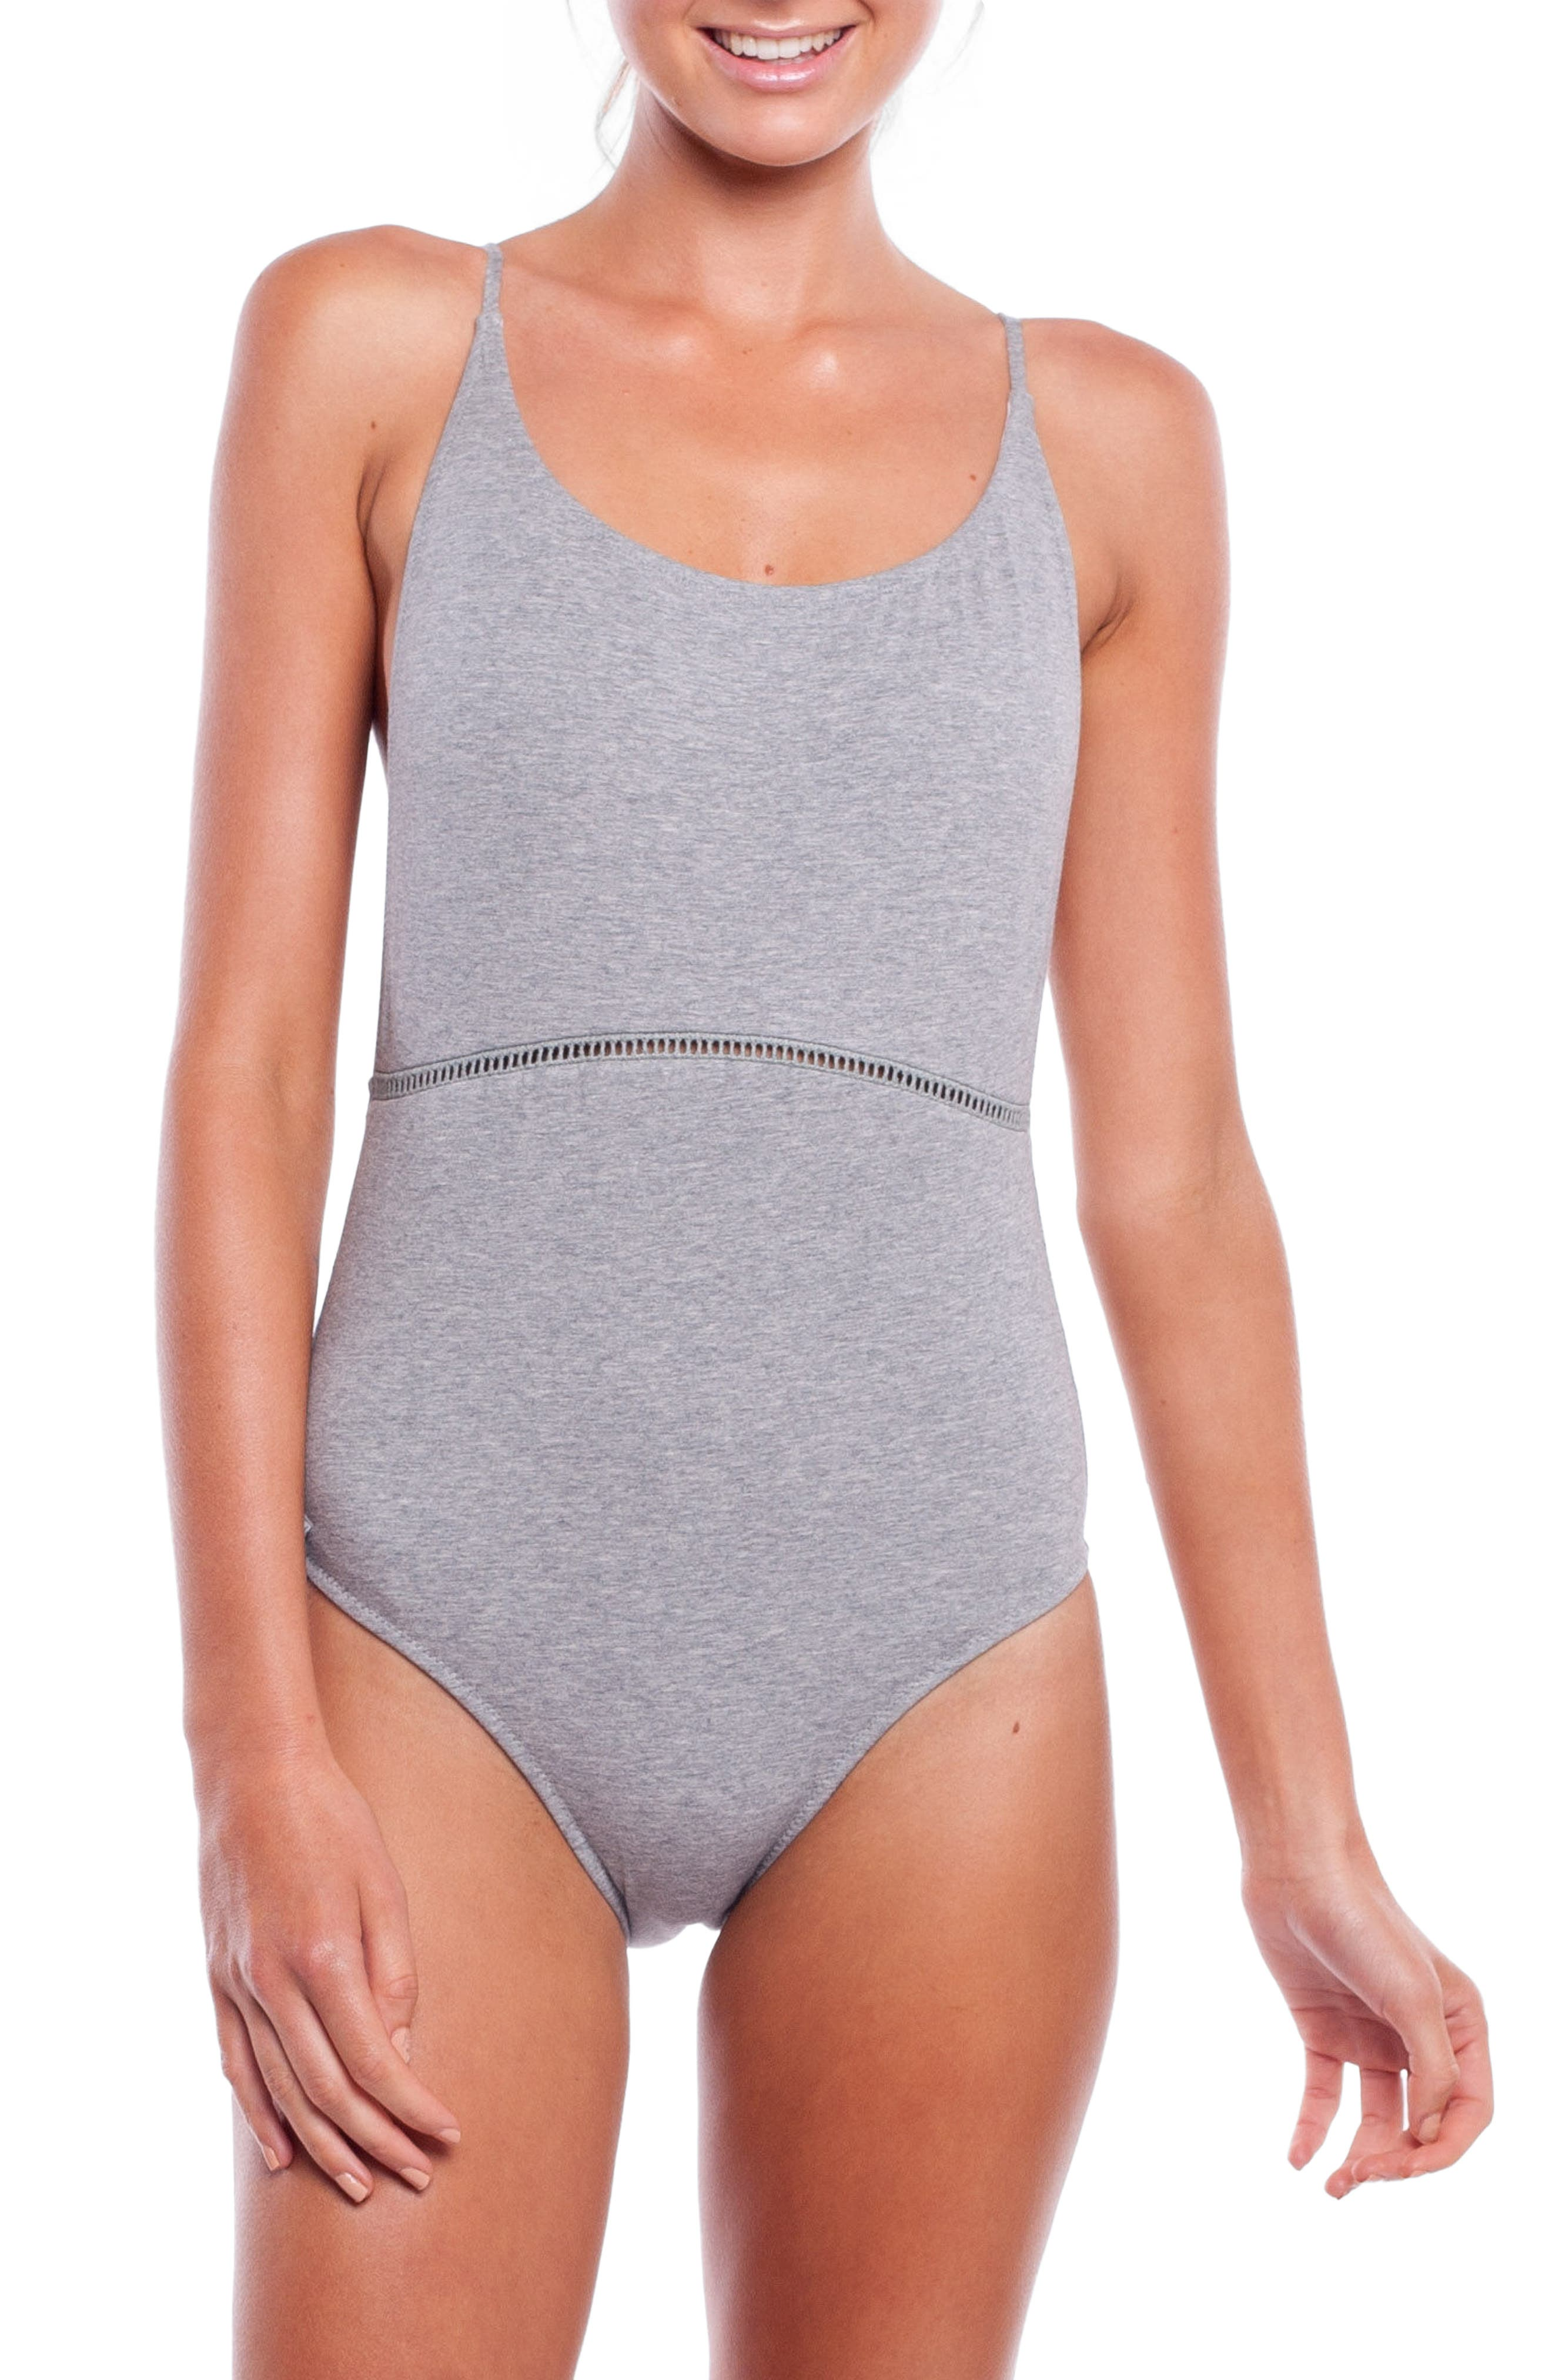 My Scoop One-Piece Swimsuit,                             Main thumbnail 1, color,                             020